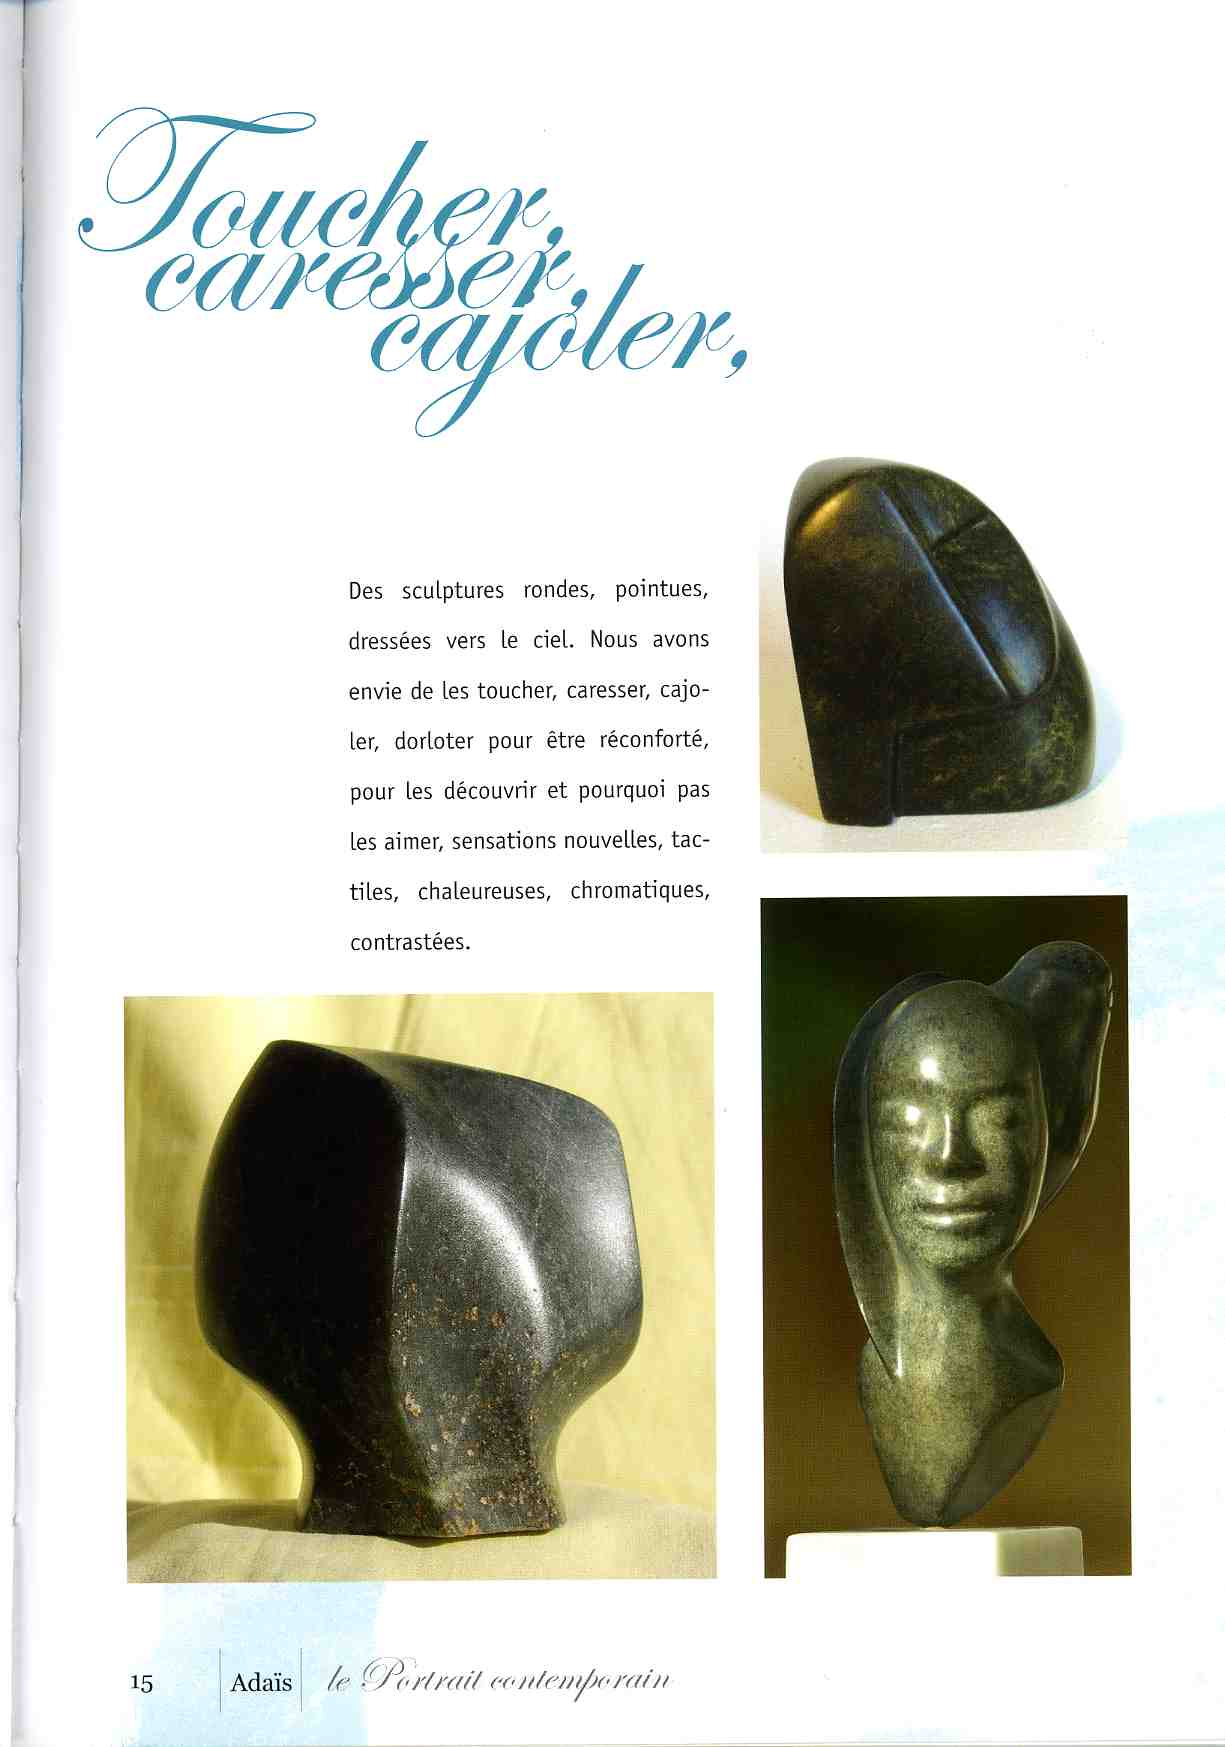 Adaïs - le Portrait contemporain - 2006 - Catalogue